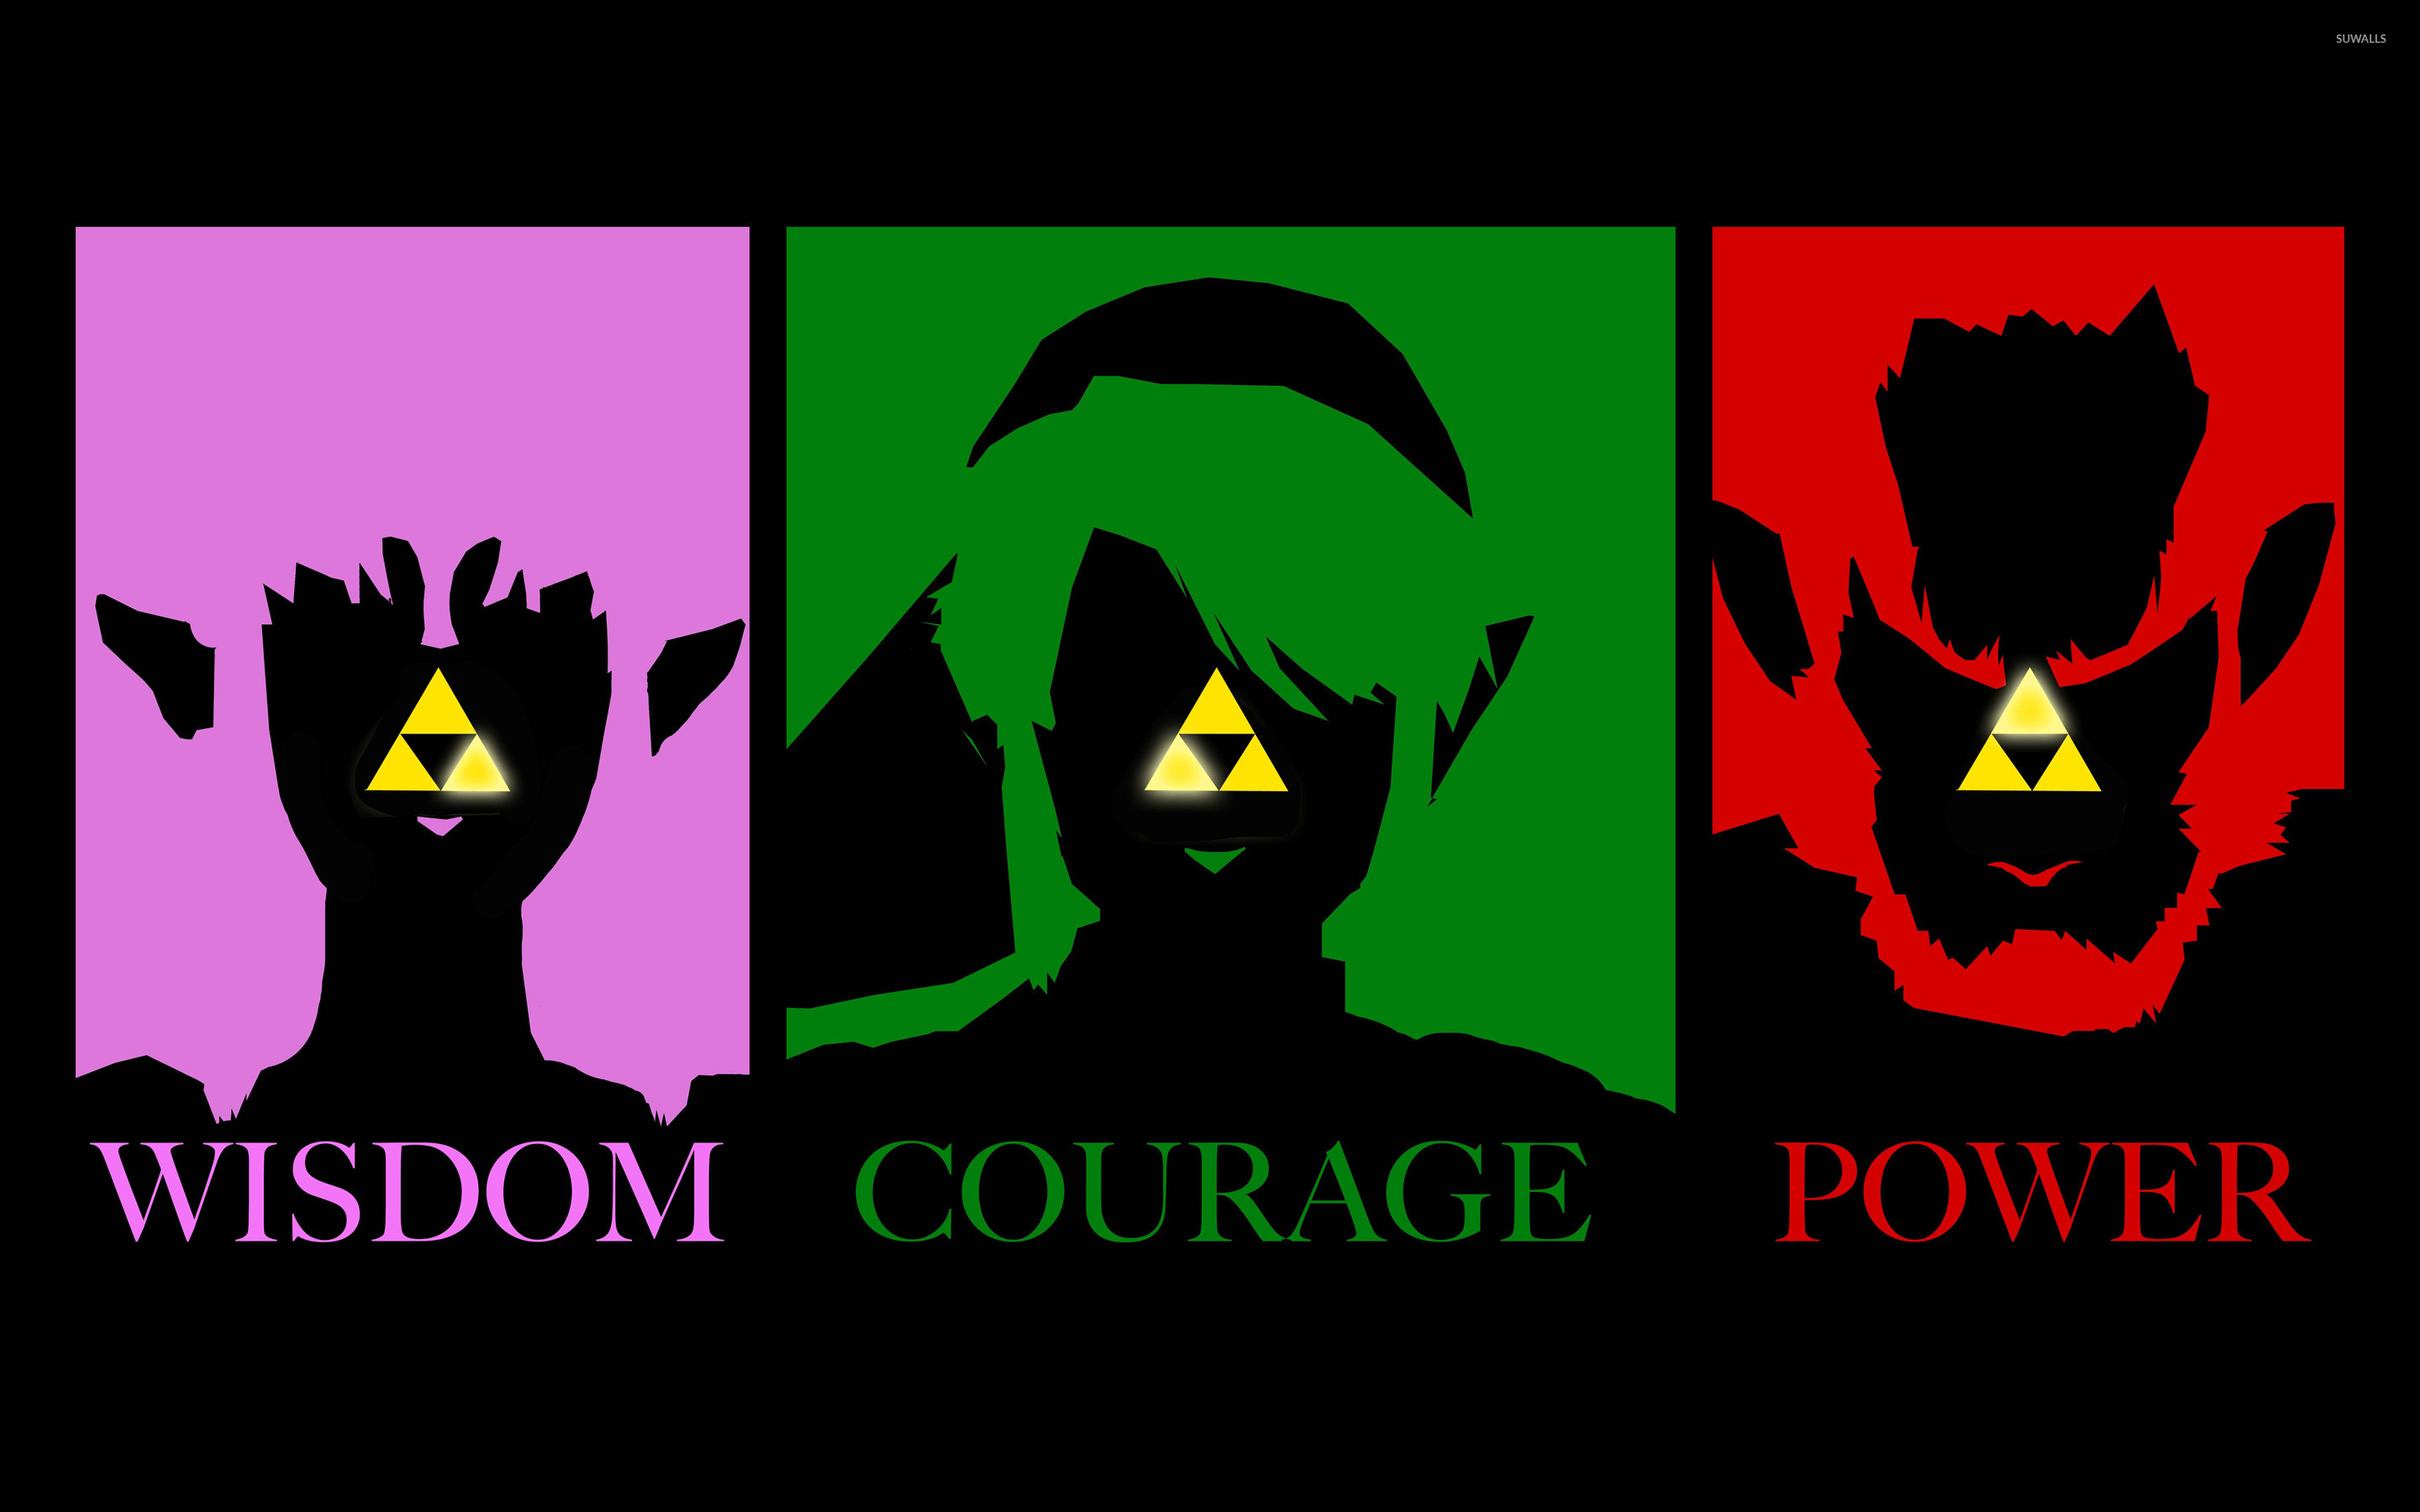 triforce - the legend of zelda wallpaper - game wallpapers - #23489